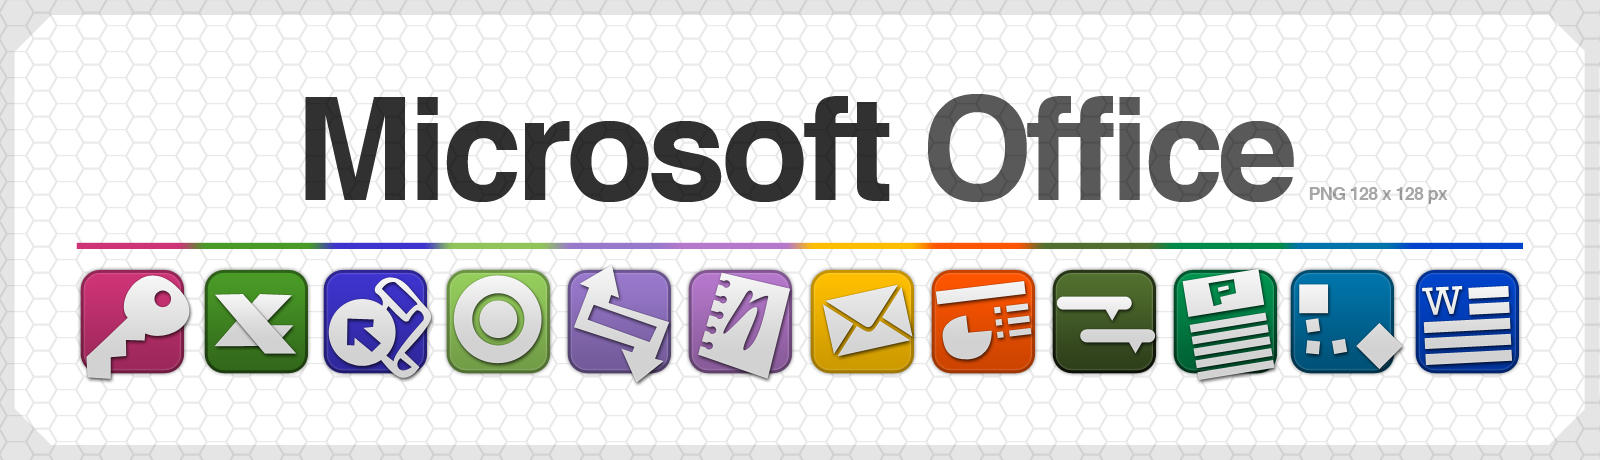 office clip art icons - photo #43